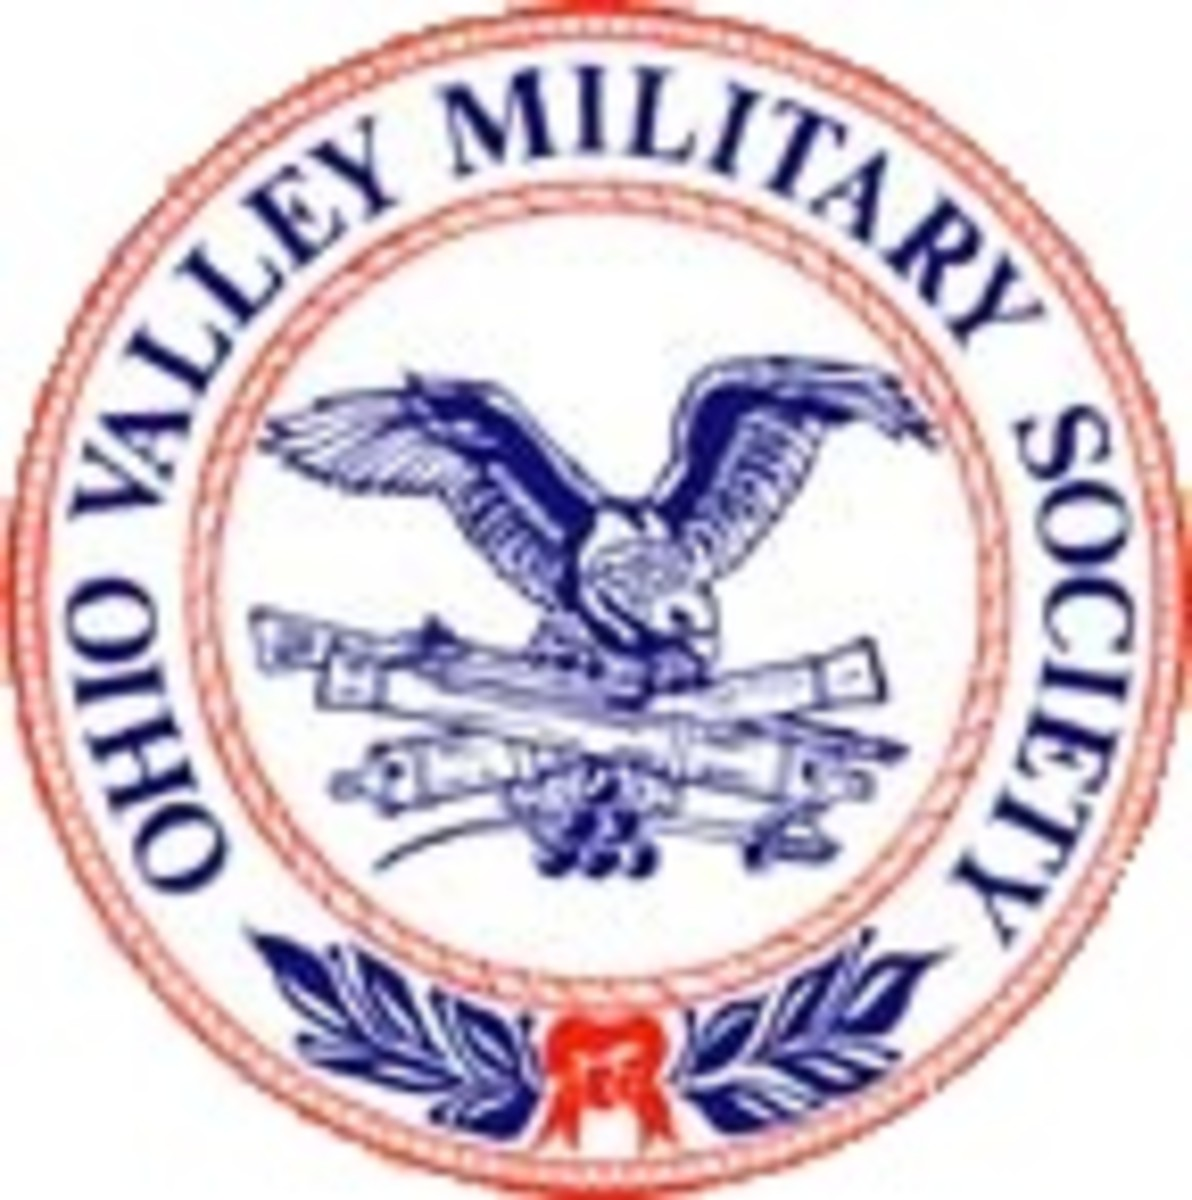 Ohio Valley Military Society sponsors the annual Show of Shows